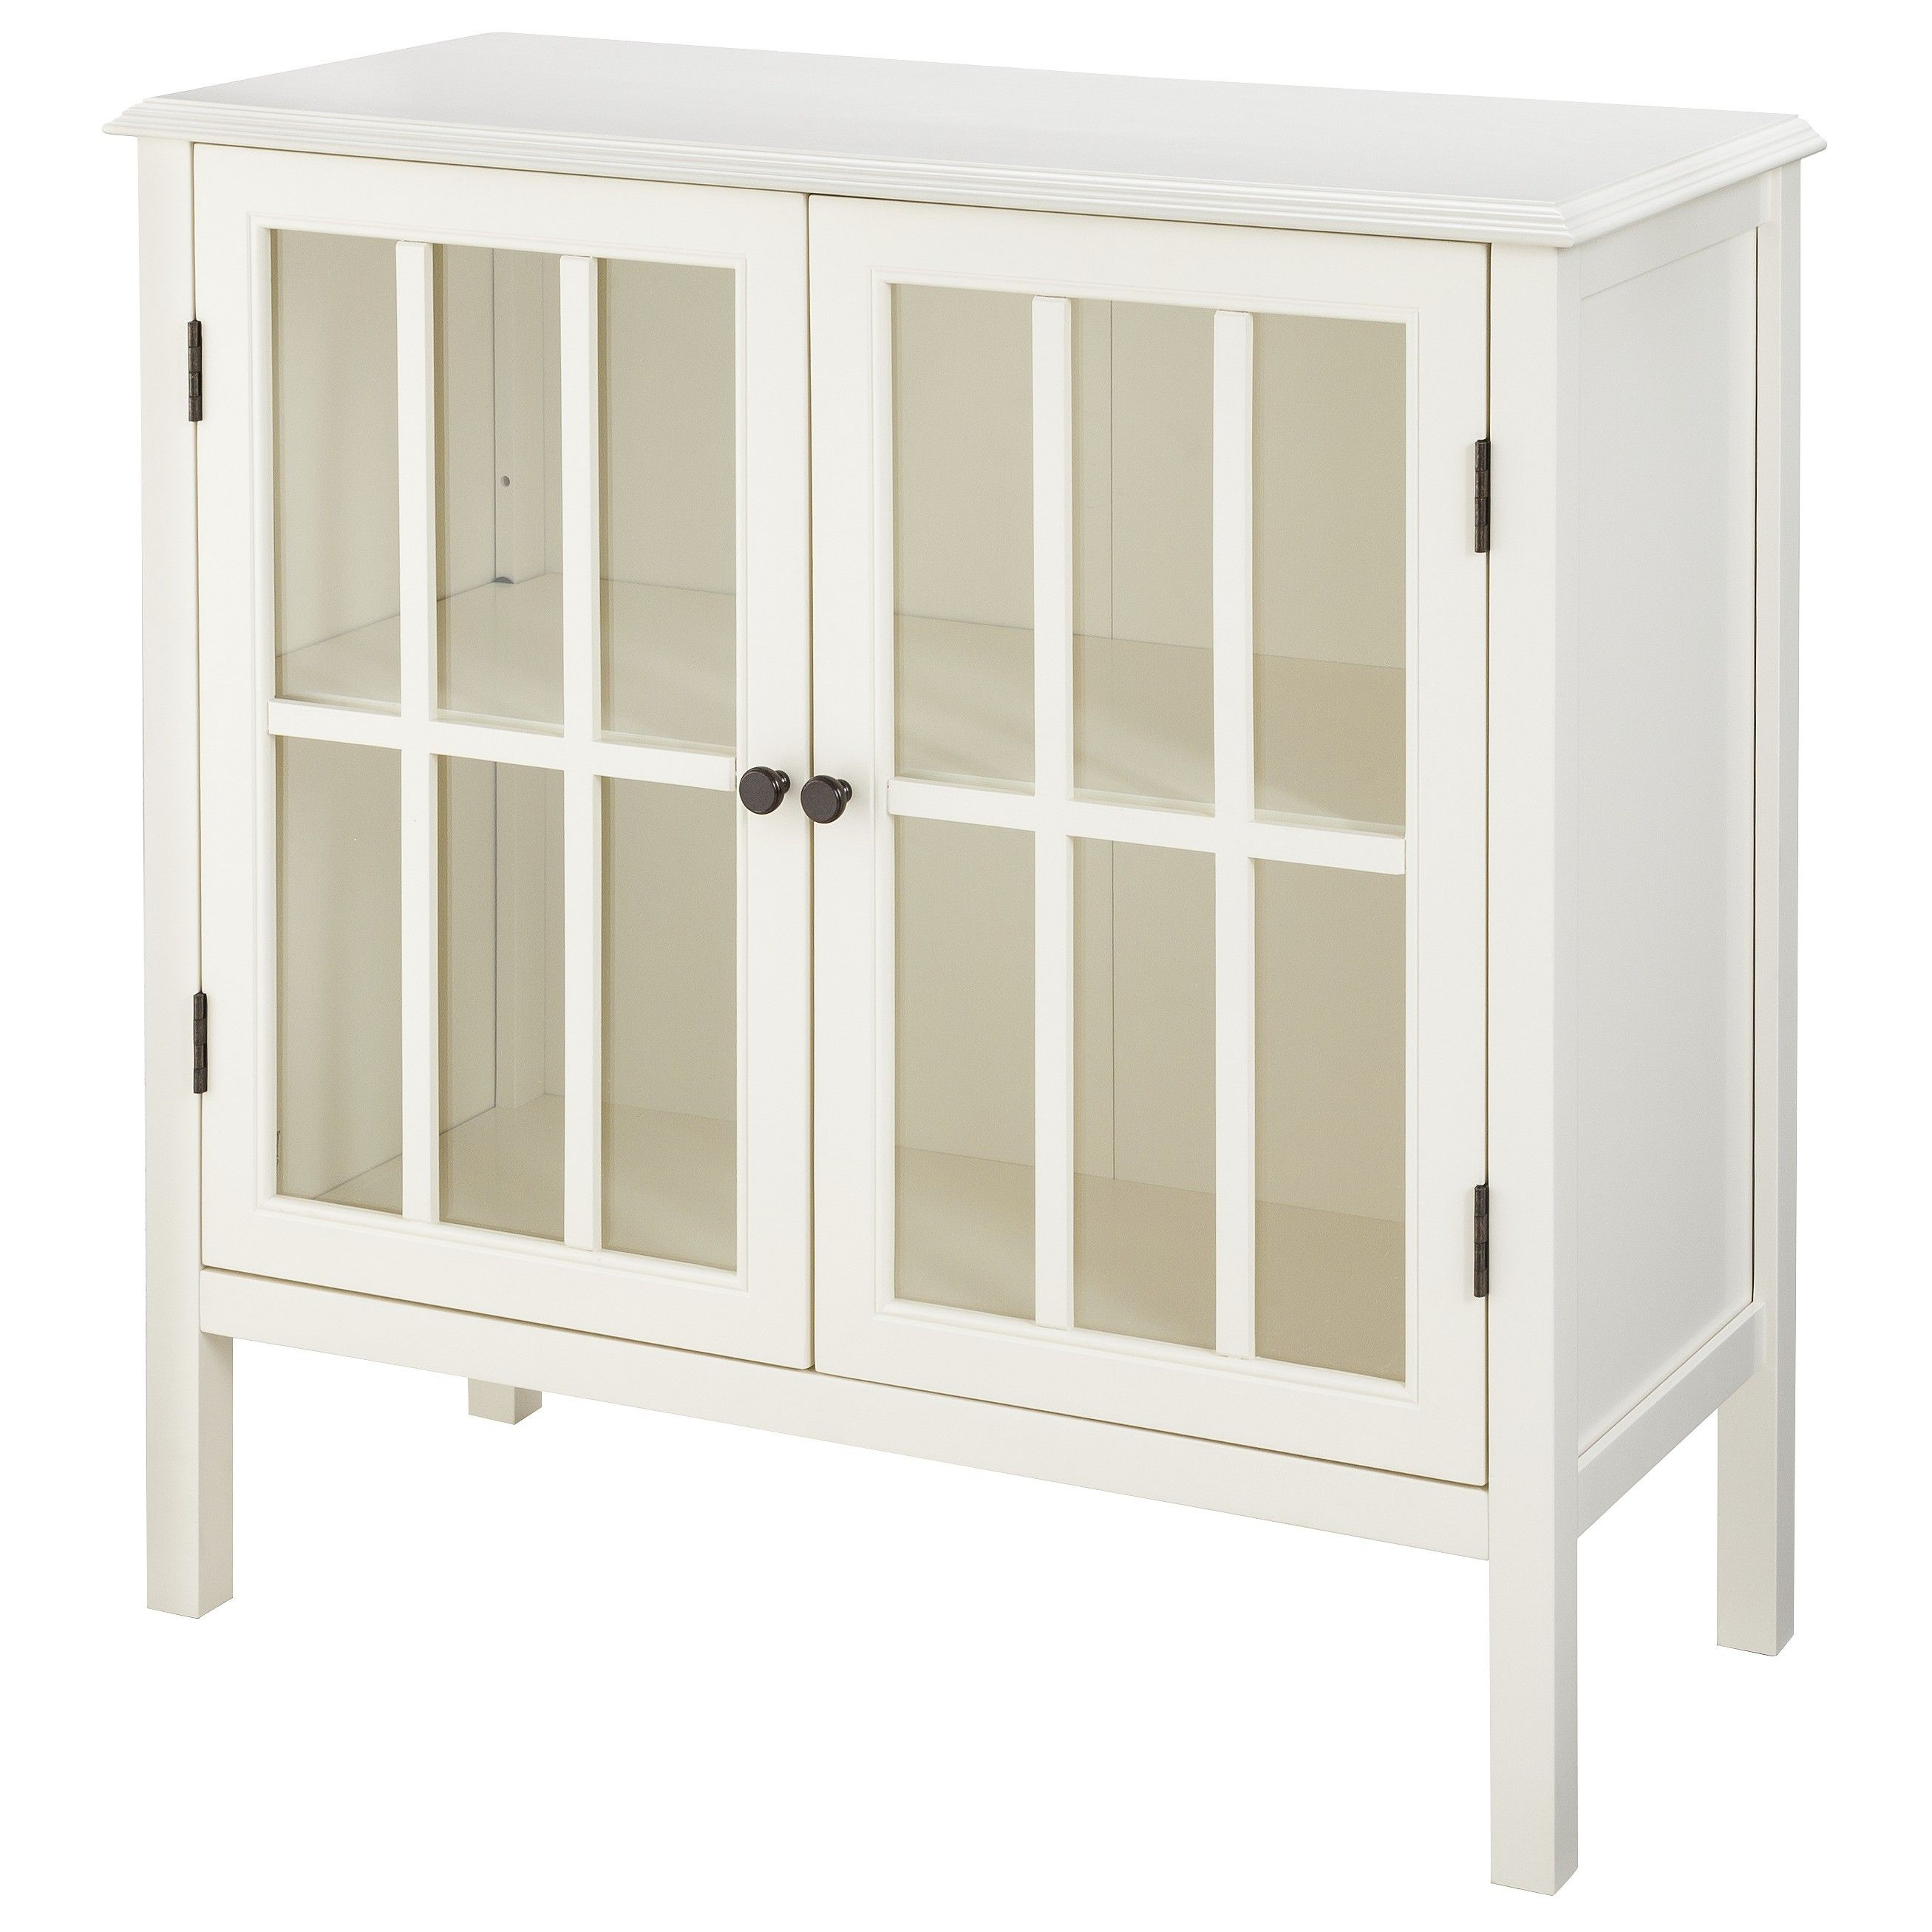 threshold windham accent cabinet target dimensions table weight compartment large deck umbrella pier lamps wall mounted white round coffee slim glass carpet transition trim blue